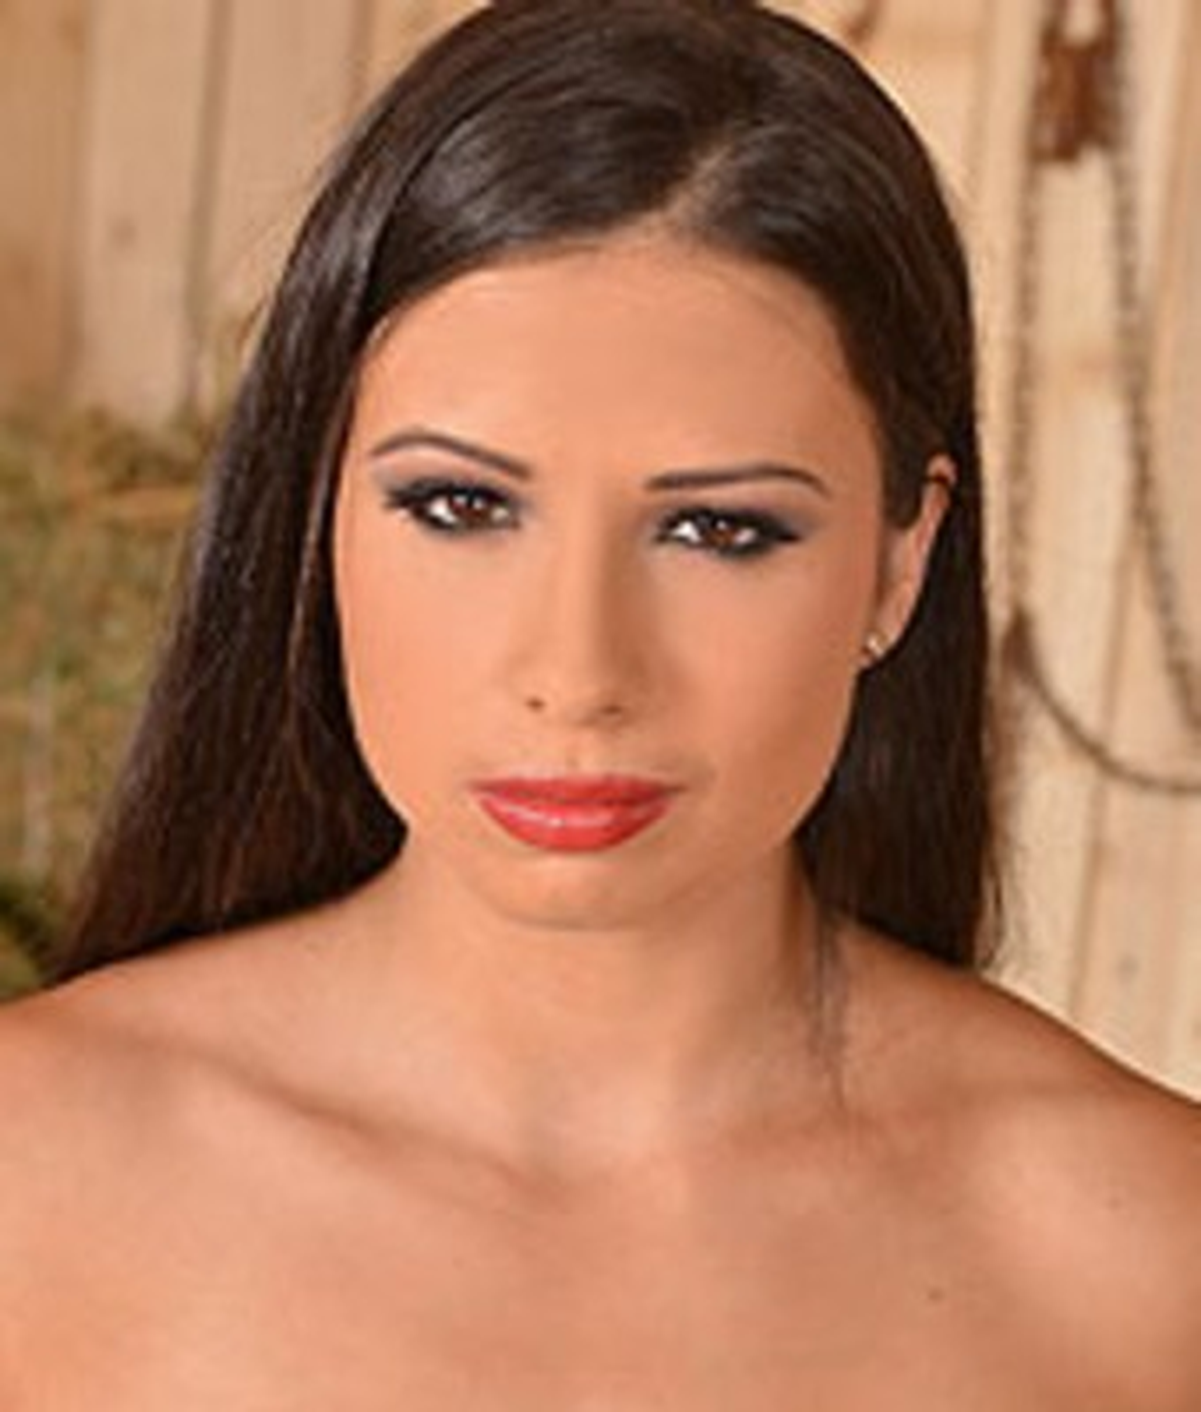 Mira Cuckold craves to be filled with many big hot pricks at once № 630717 без смс